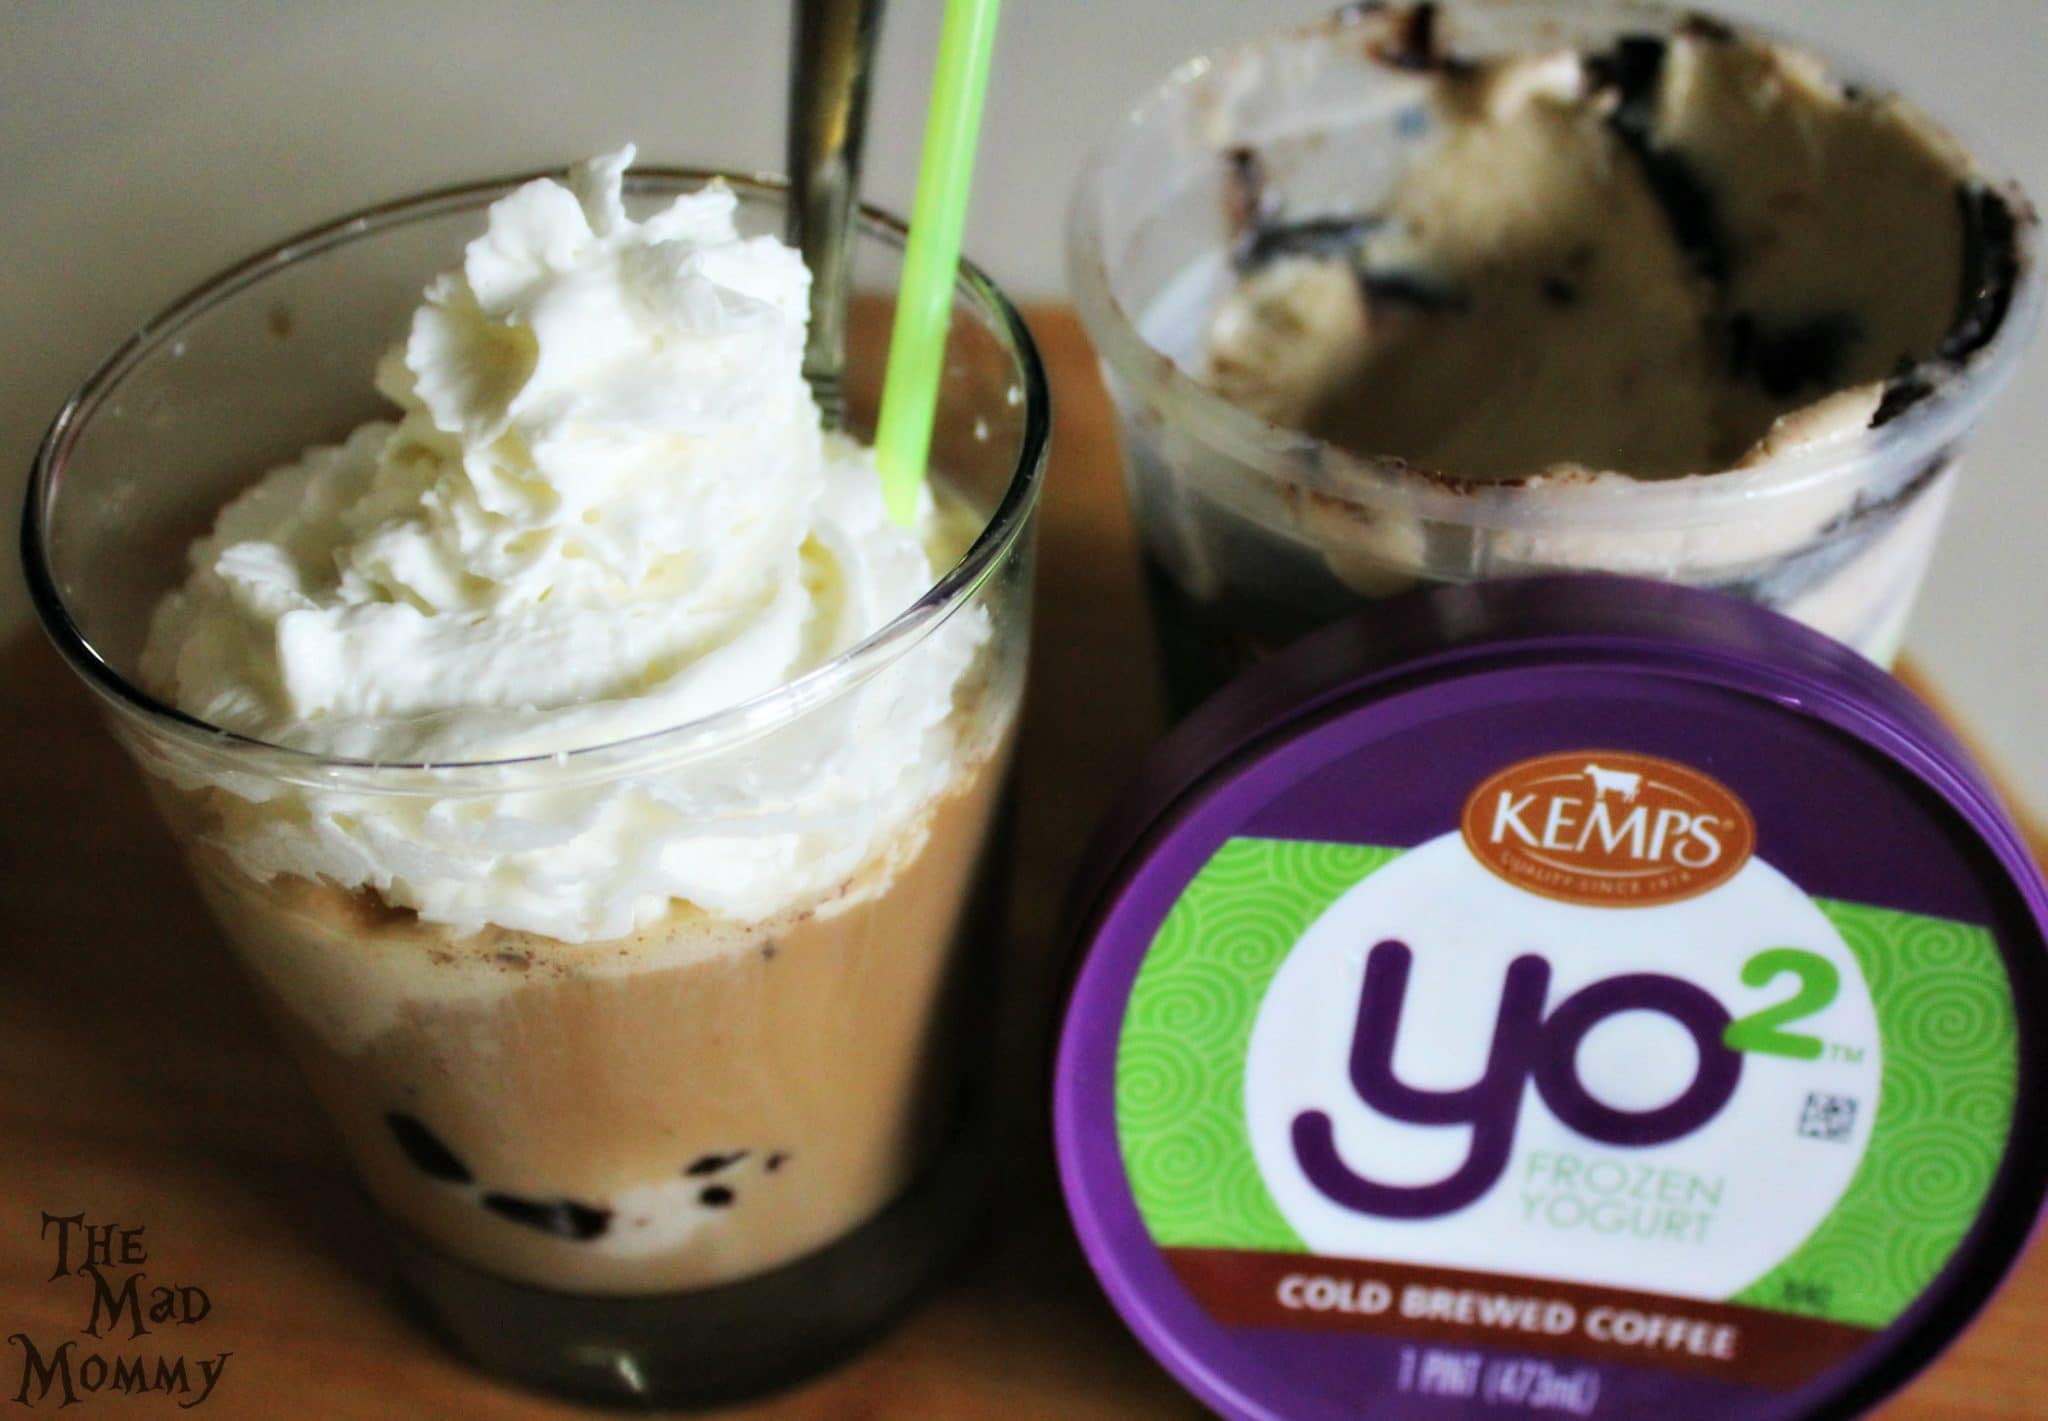 Indulge yourself and enjoy a Cold Brewed Coffee Float featuring Kemp's Yo² Frozen Yogurt! #Sponsored #Yo2 #ItsTheCows